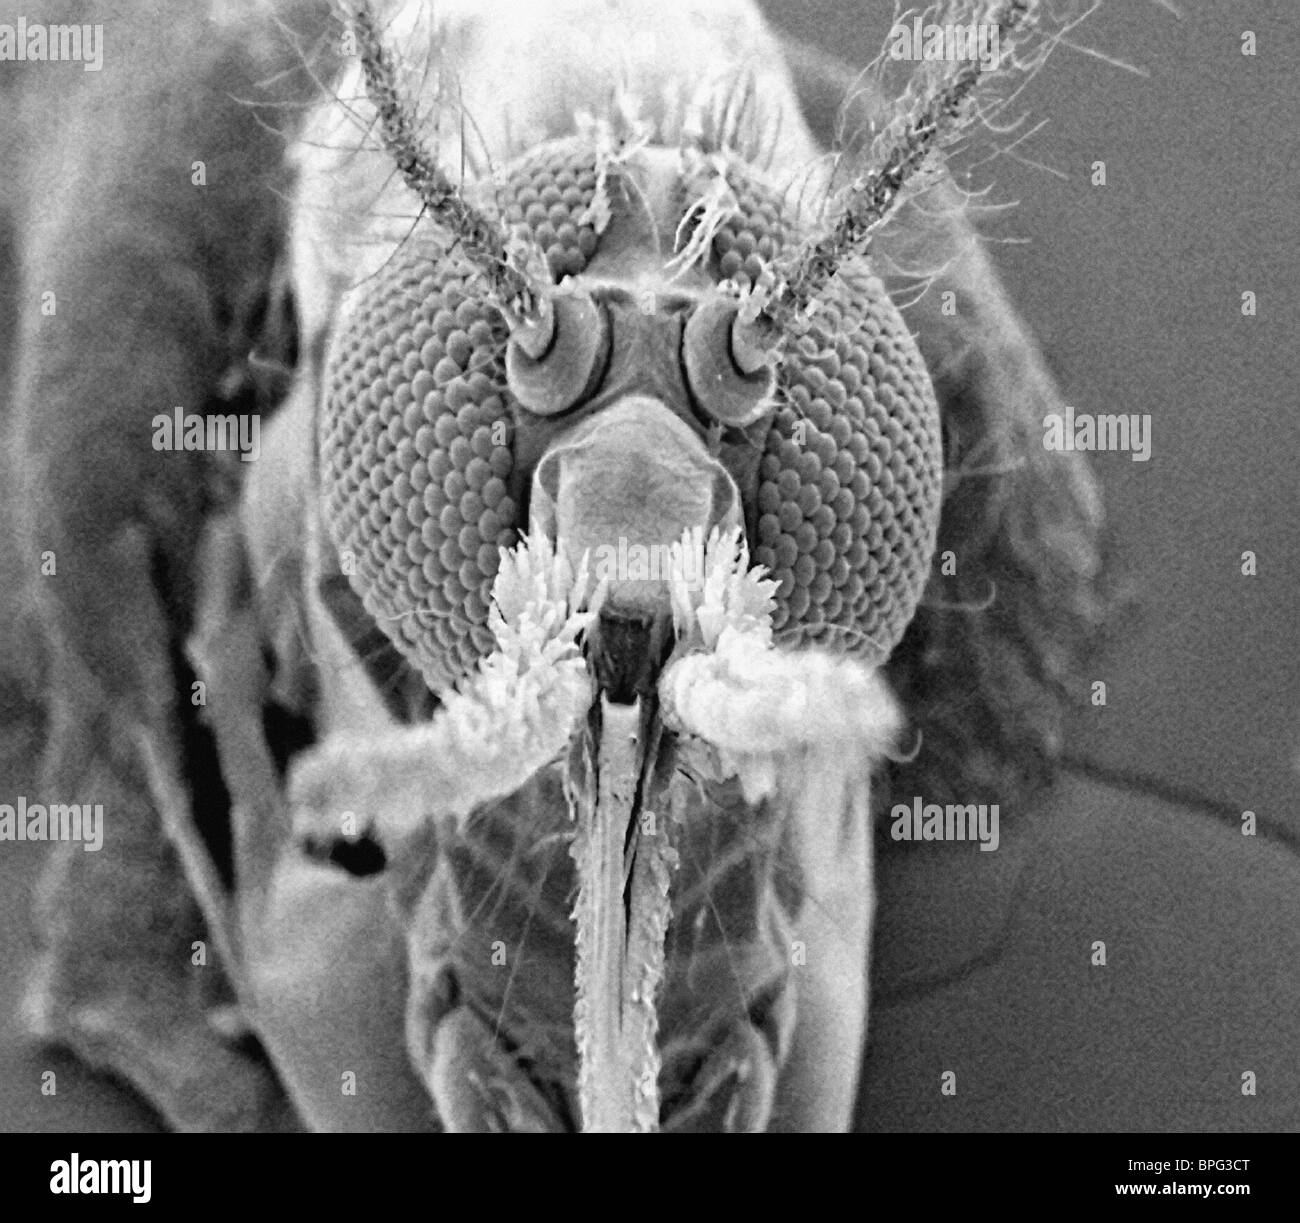 Mosquito - front view taken with the scanning electron microscope. - Stock Image